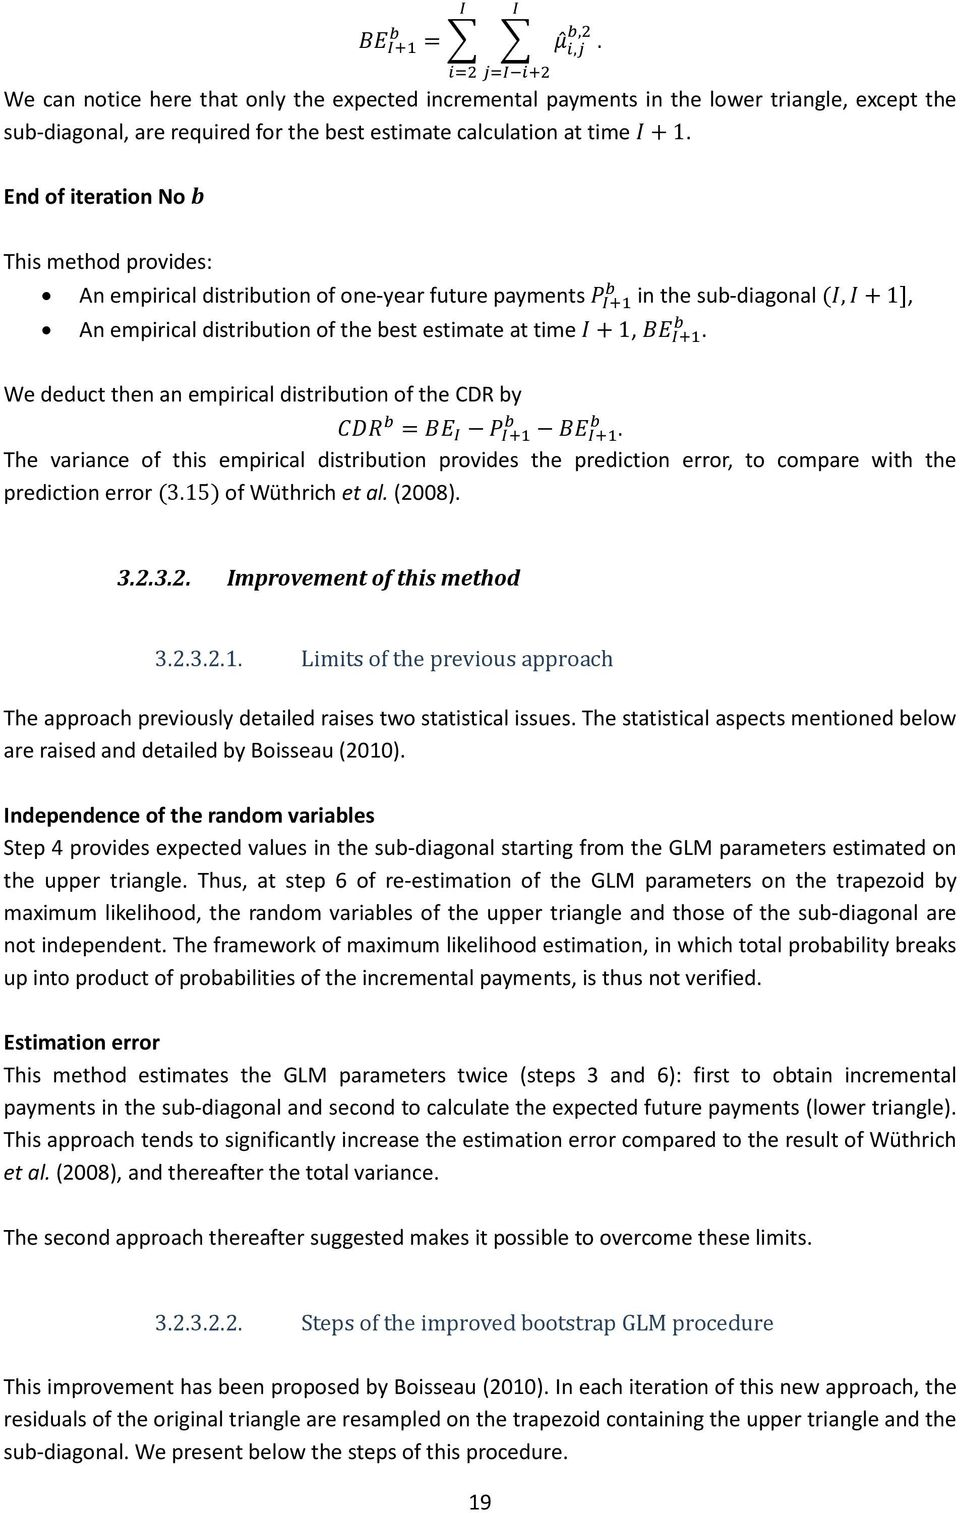 distribution of the CDR by =. The variance of this empirical distribution provides the prediction error, to compare with the prediction error 3.15 of Wüthrich et al. (2008).. 3.2.3.2. Improvement of this method 3.